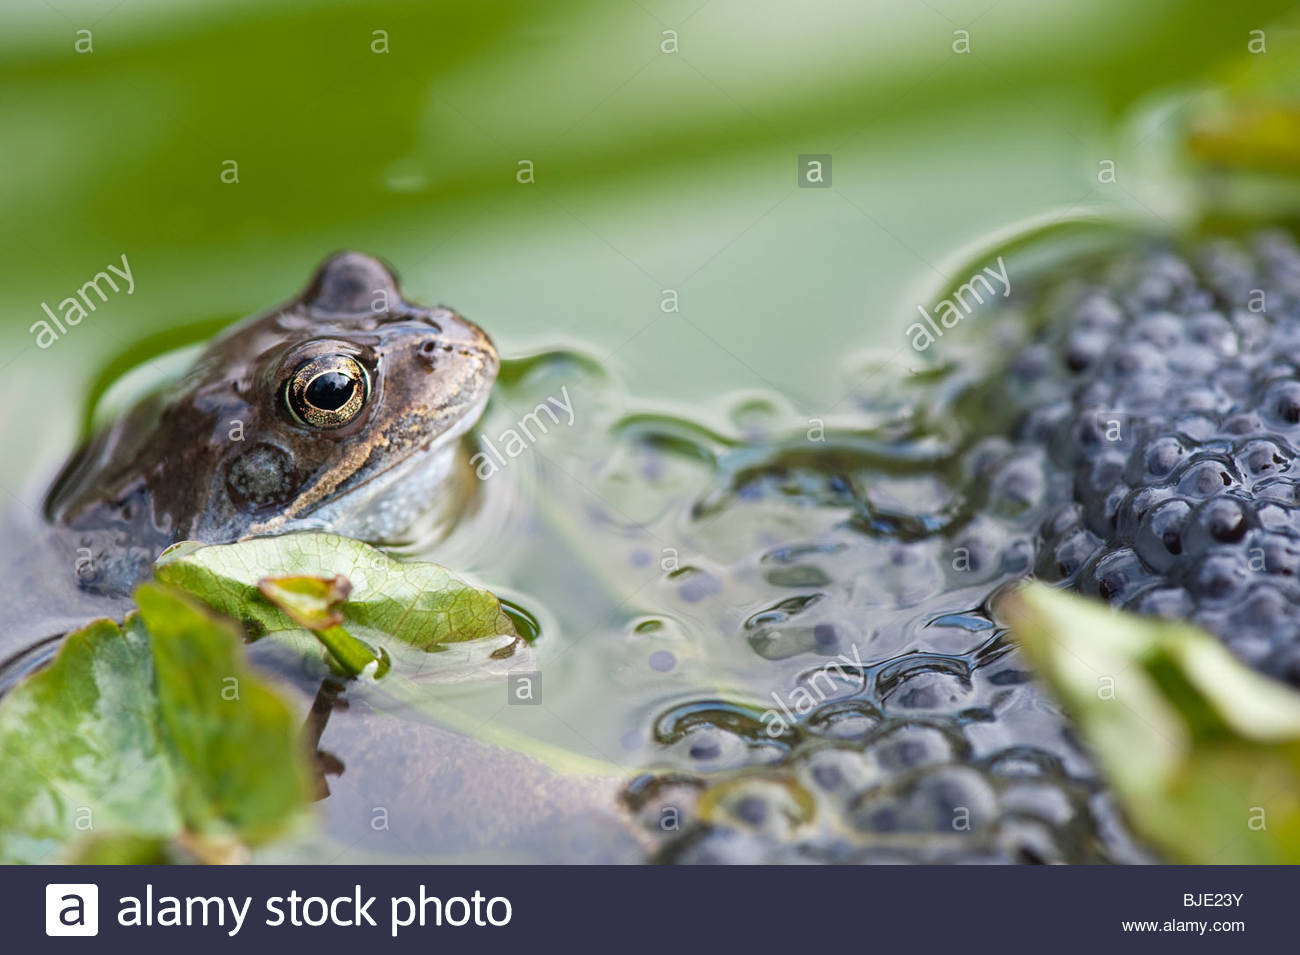 frogs stockfotos frogs bilder alamy. Black Bedroom Furniture Sets. Home Design Ideas